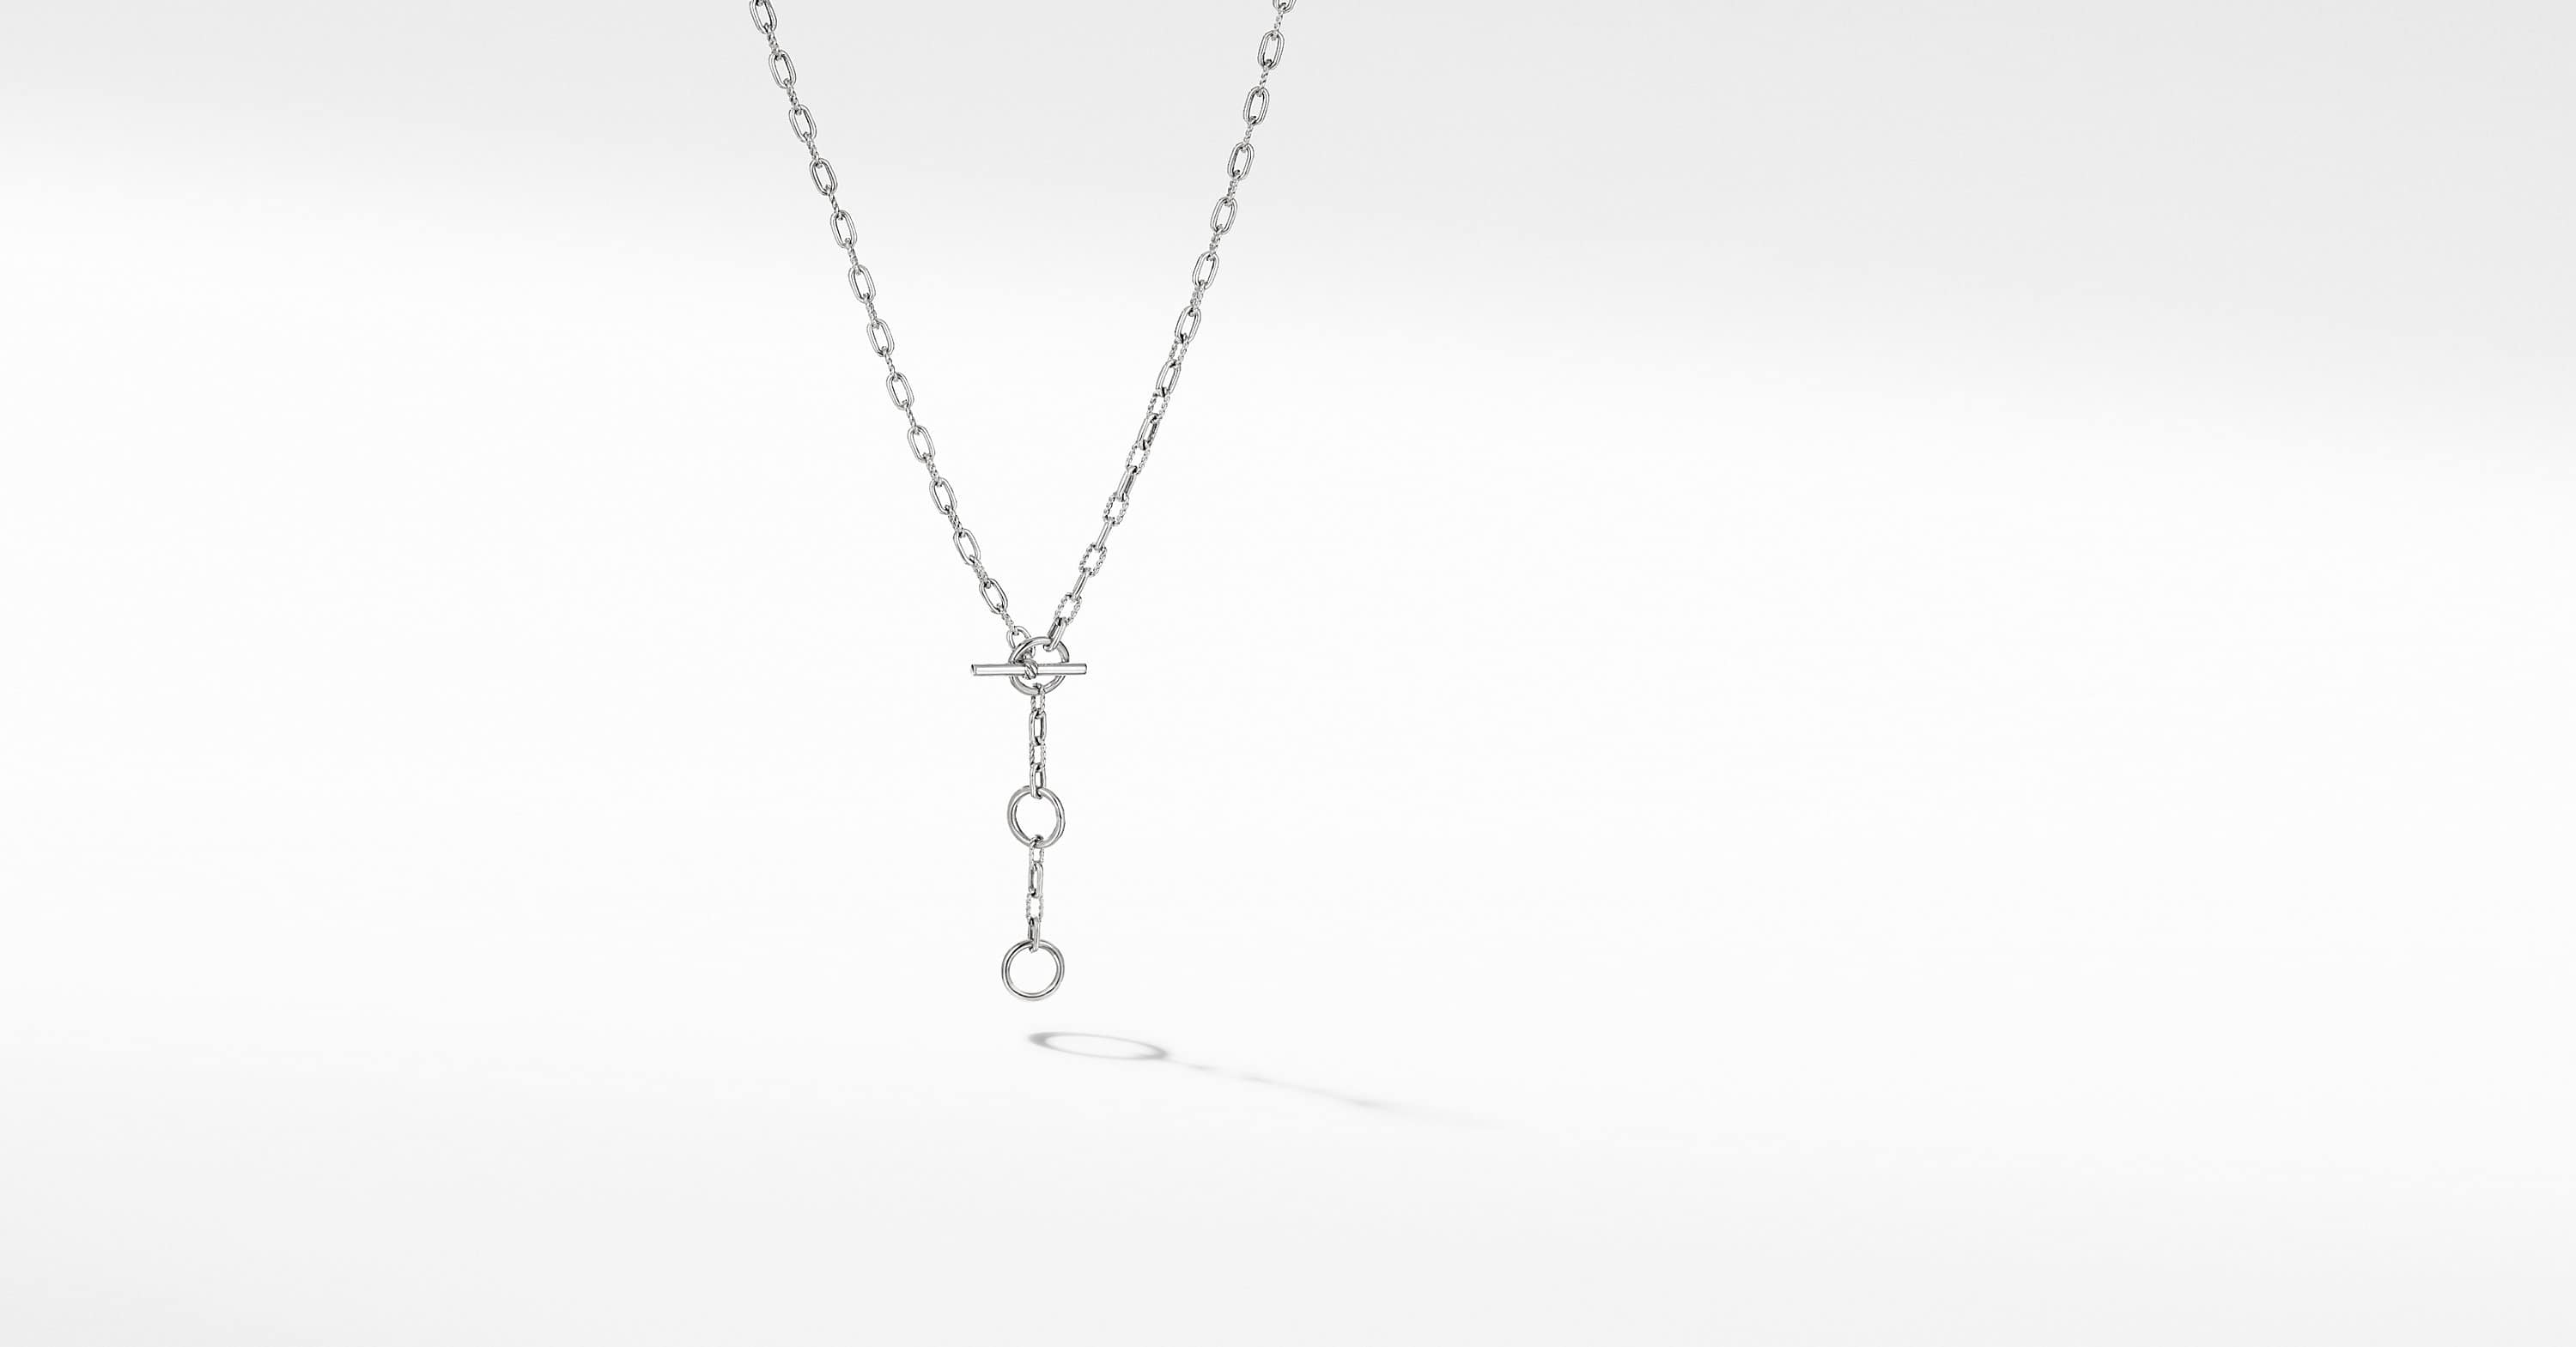 DY Madison Three Ring Chain Necklace